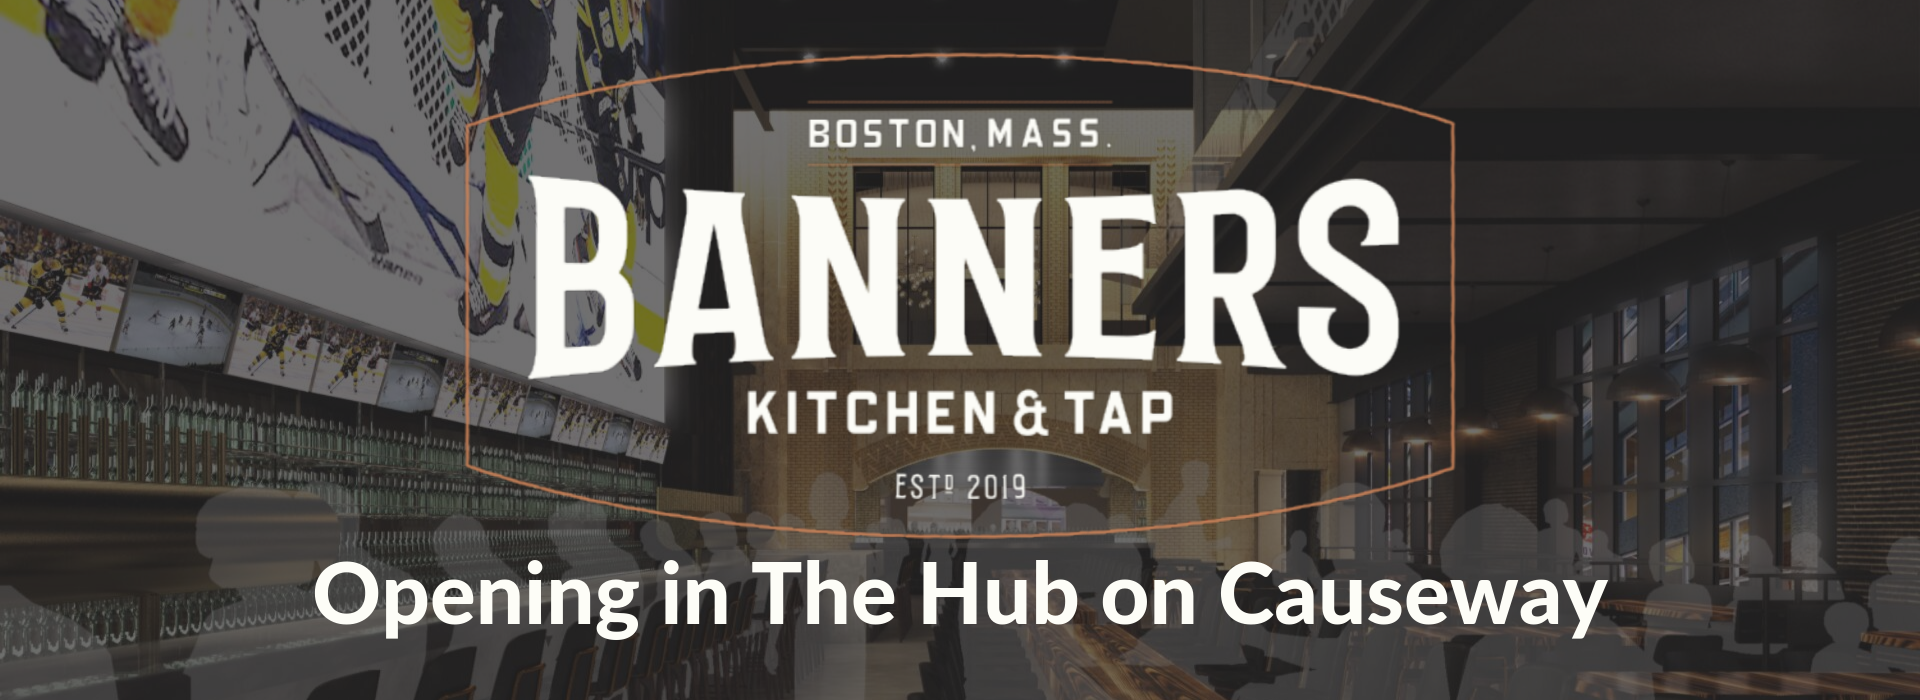 Banners Kitchen & Tap